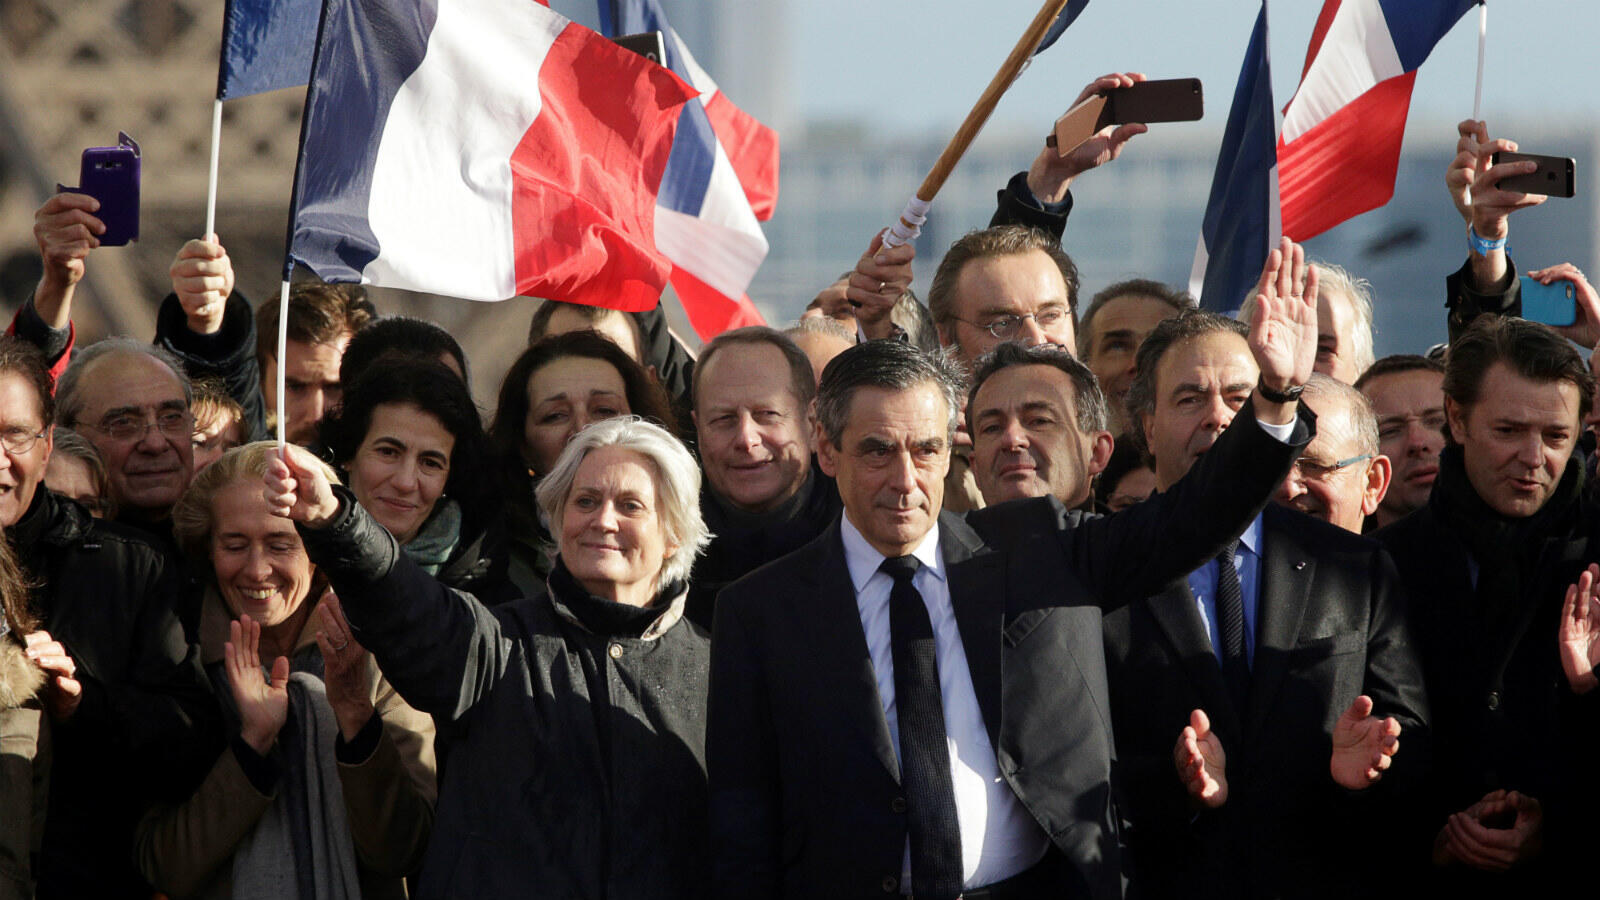 François Fillon and his wife Penelope on the campaign trail.